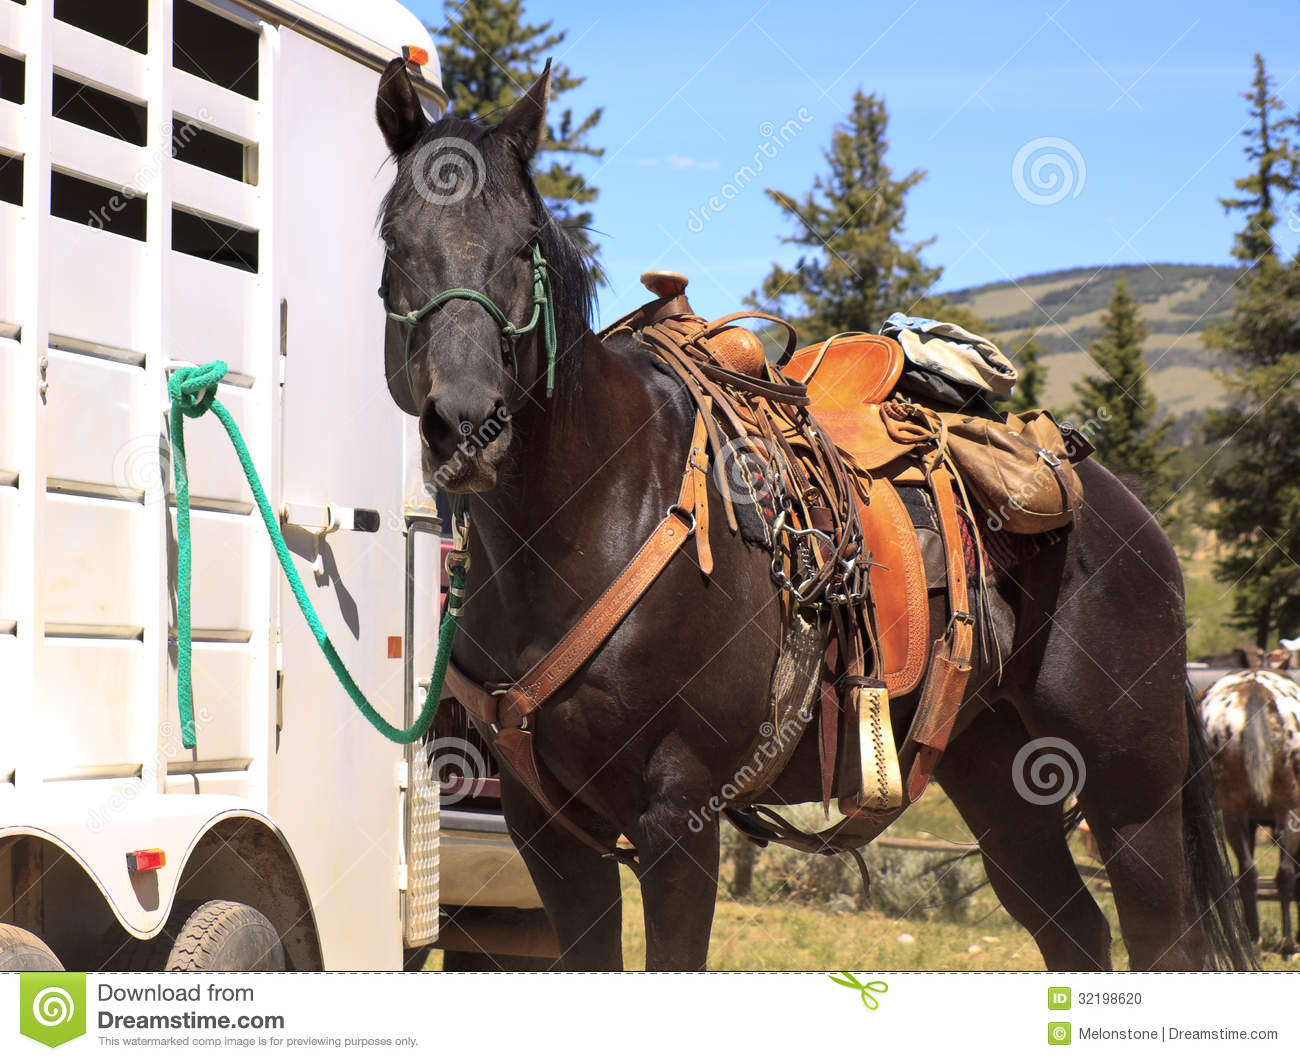 569 Western Horse Tack Photos Free Royalty Free Stock Photos From Dreamstime